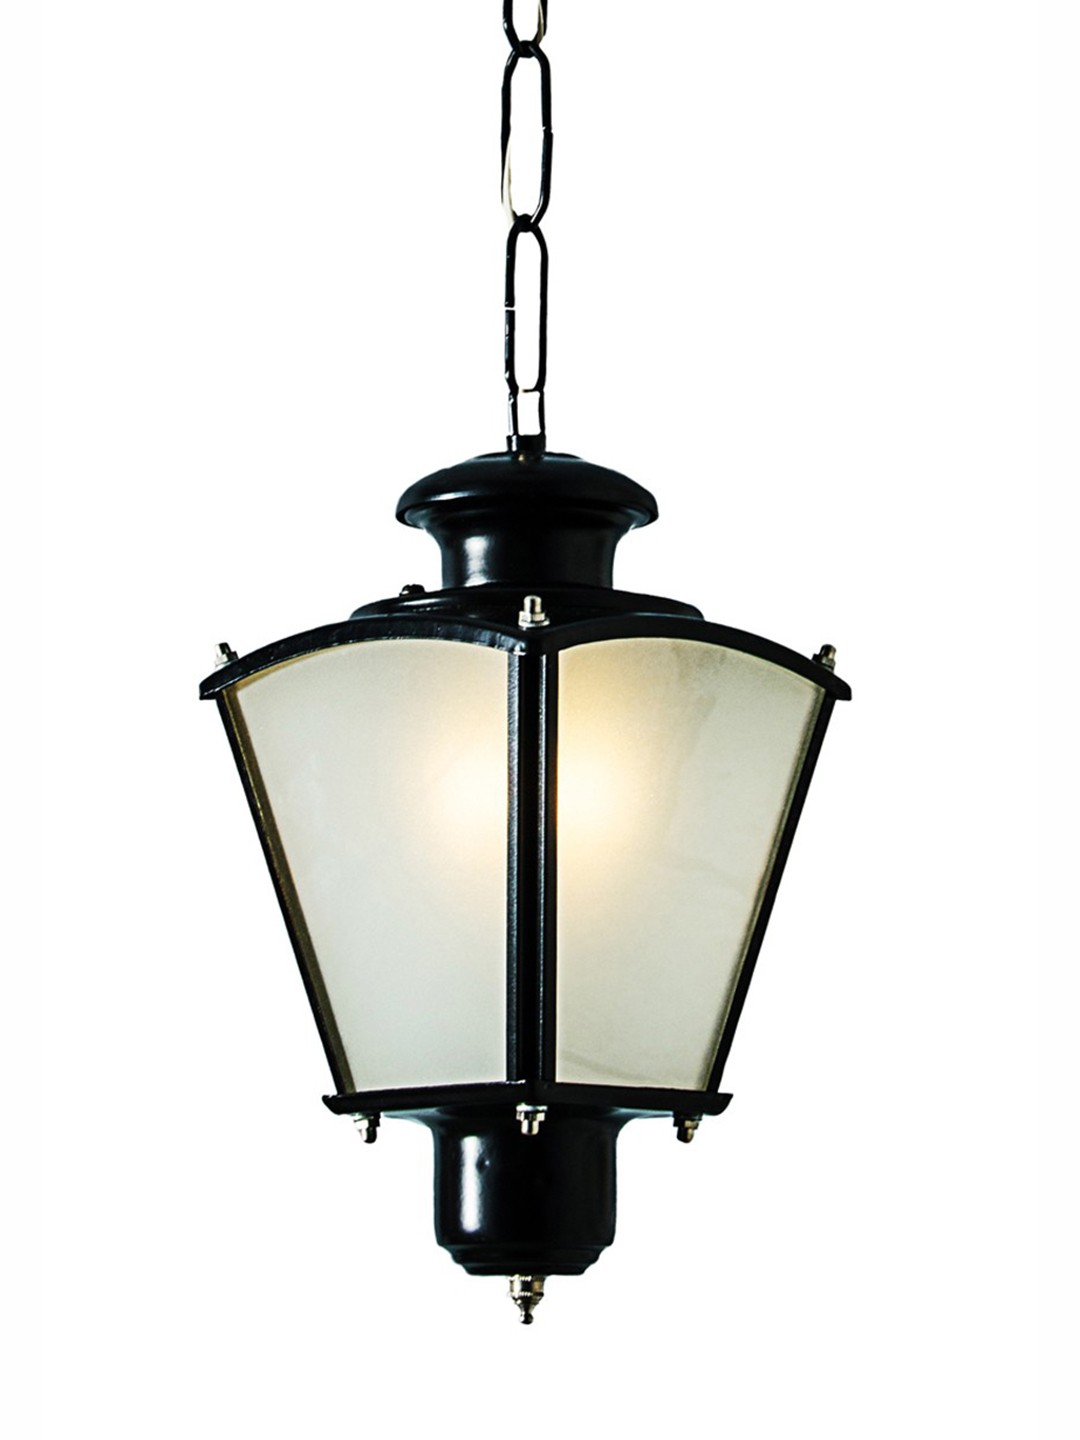 Classic Black Small Outdoor Lantern Light